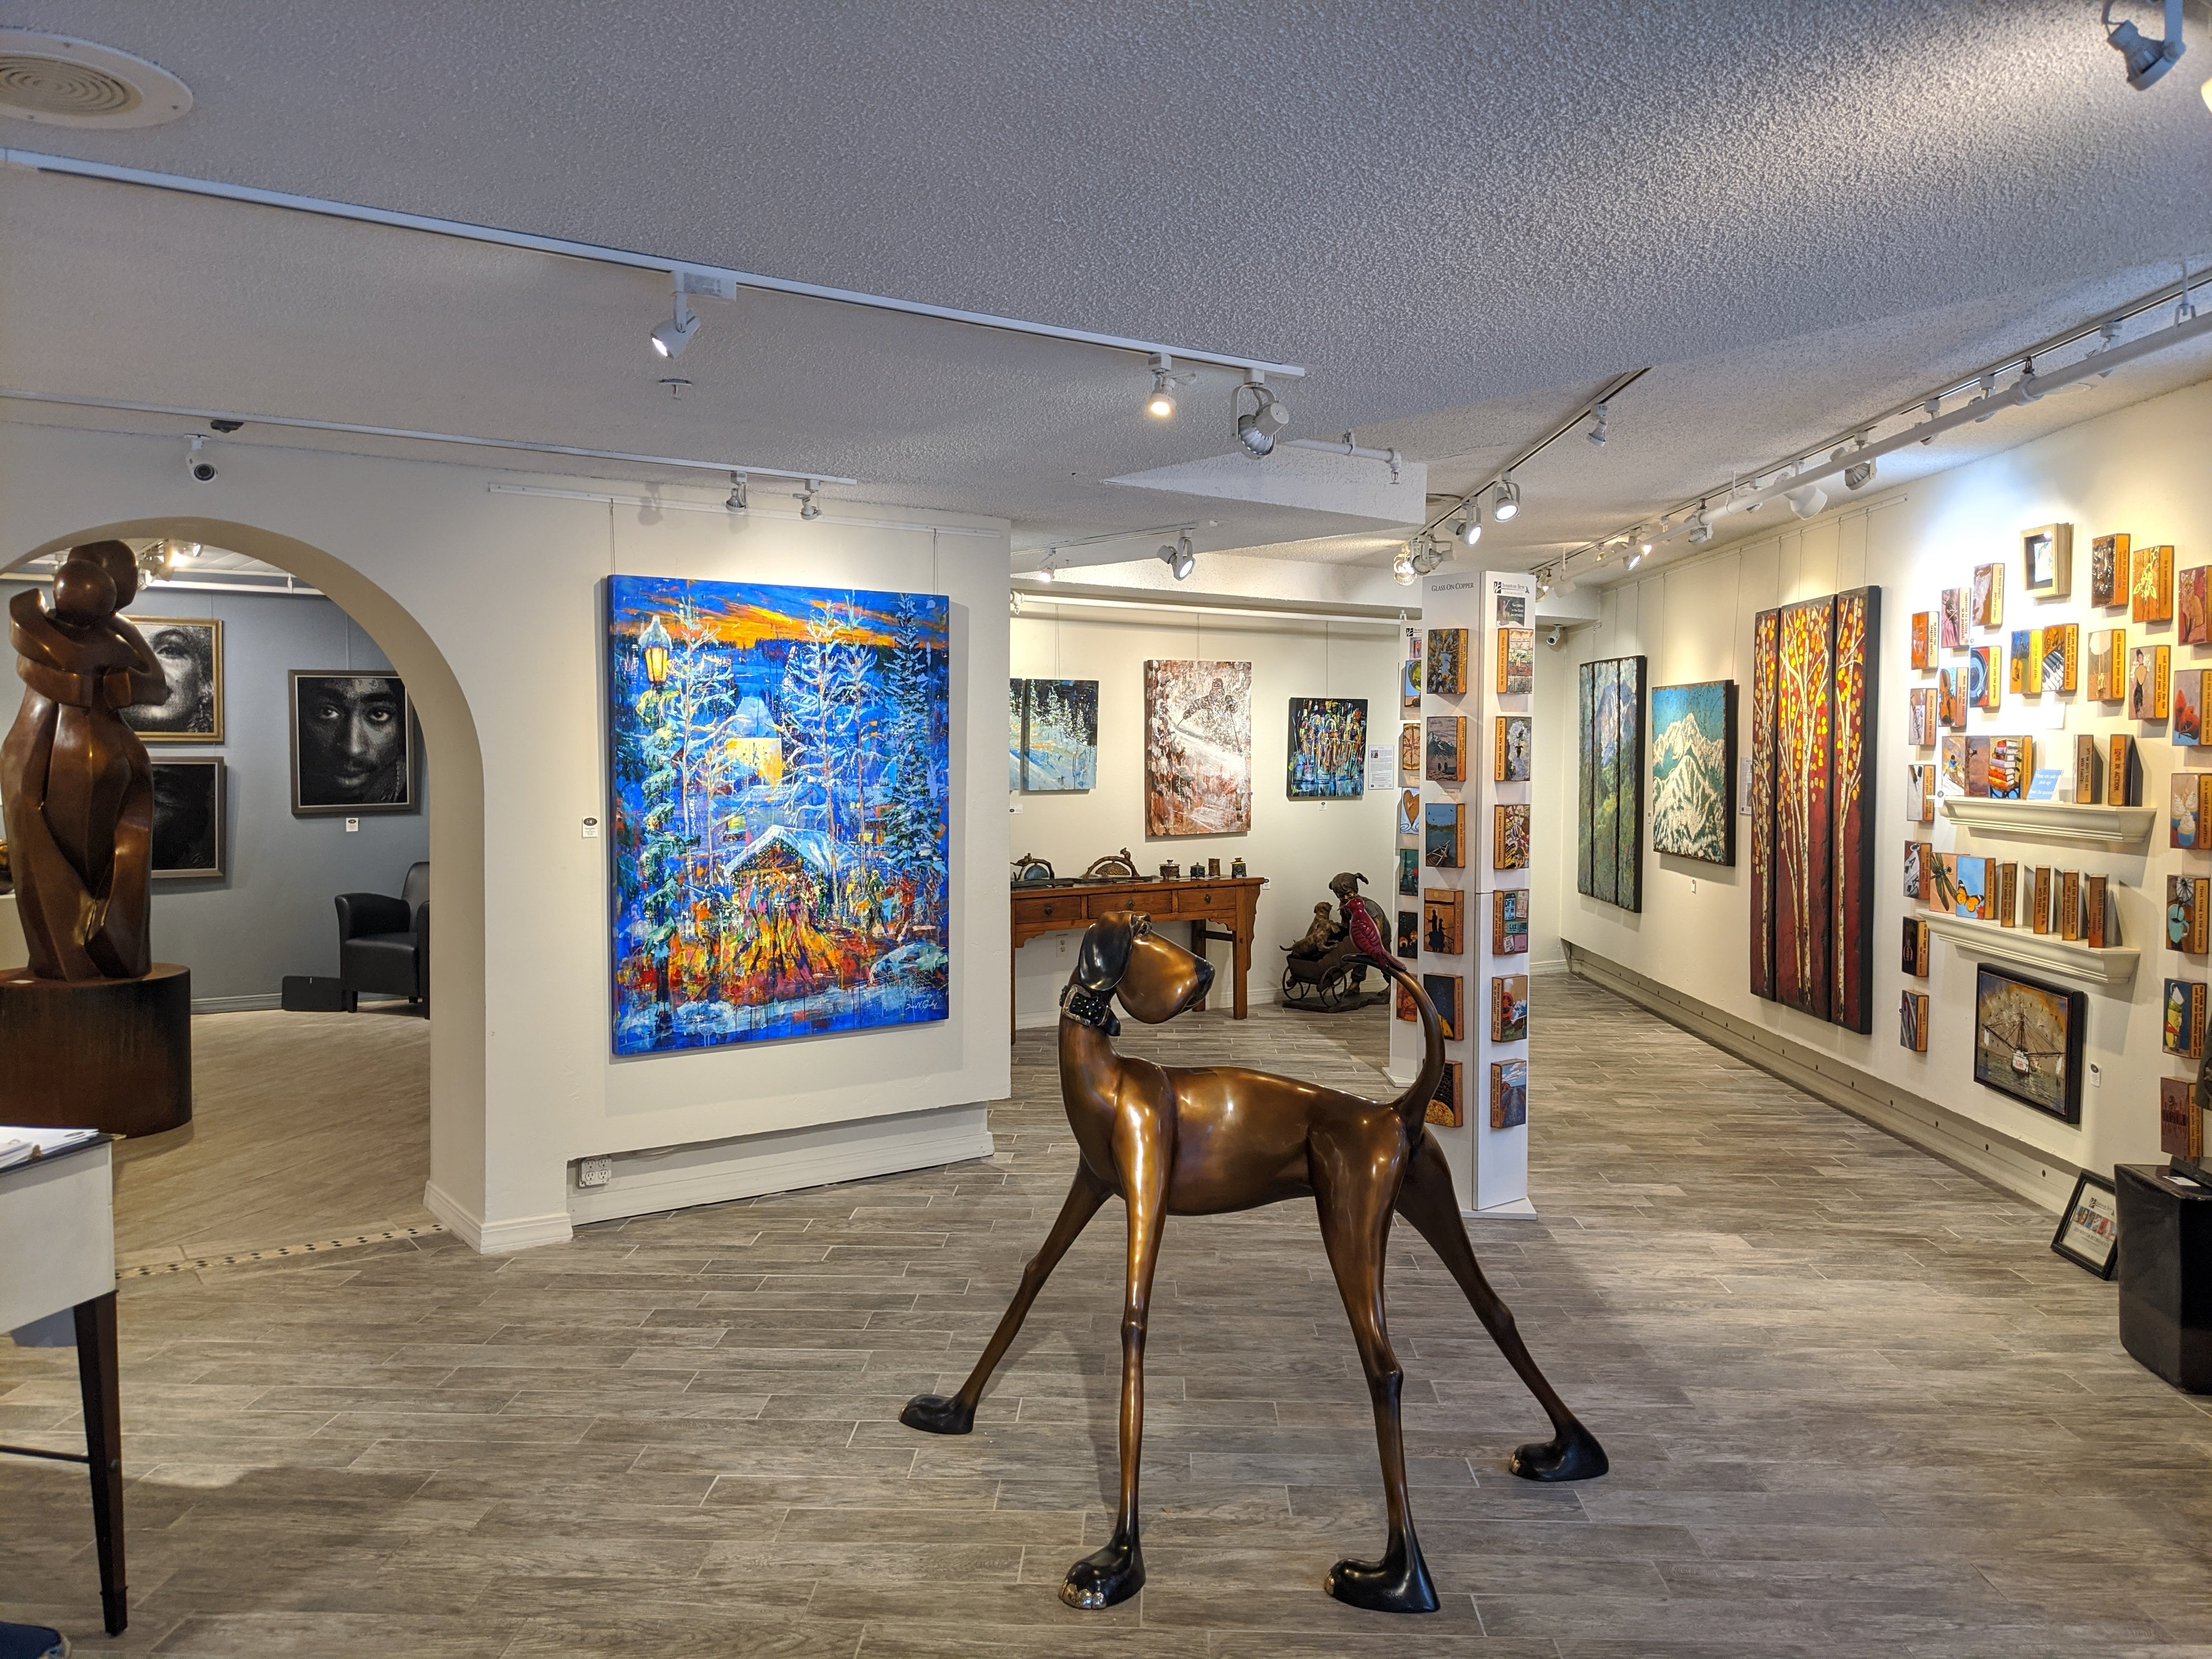 Raitman Art Galleries Vail, Colorado. Showing Paintings and Sculptures by Artists Marty Goldstein, Rolinda Stotts, David V. Gonzales, Houston Llew, Fekadu Mekasha, Mark Yale Harris and Marianne Caroselli